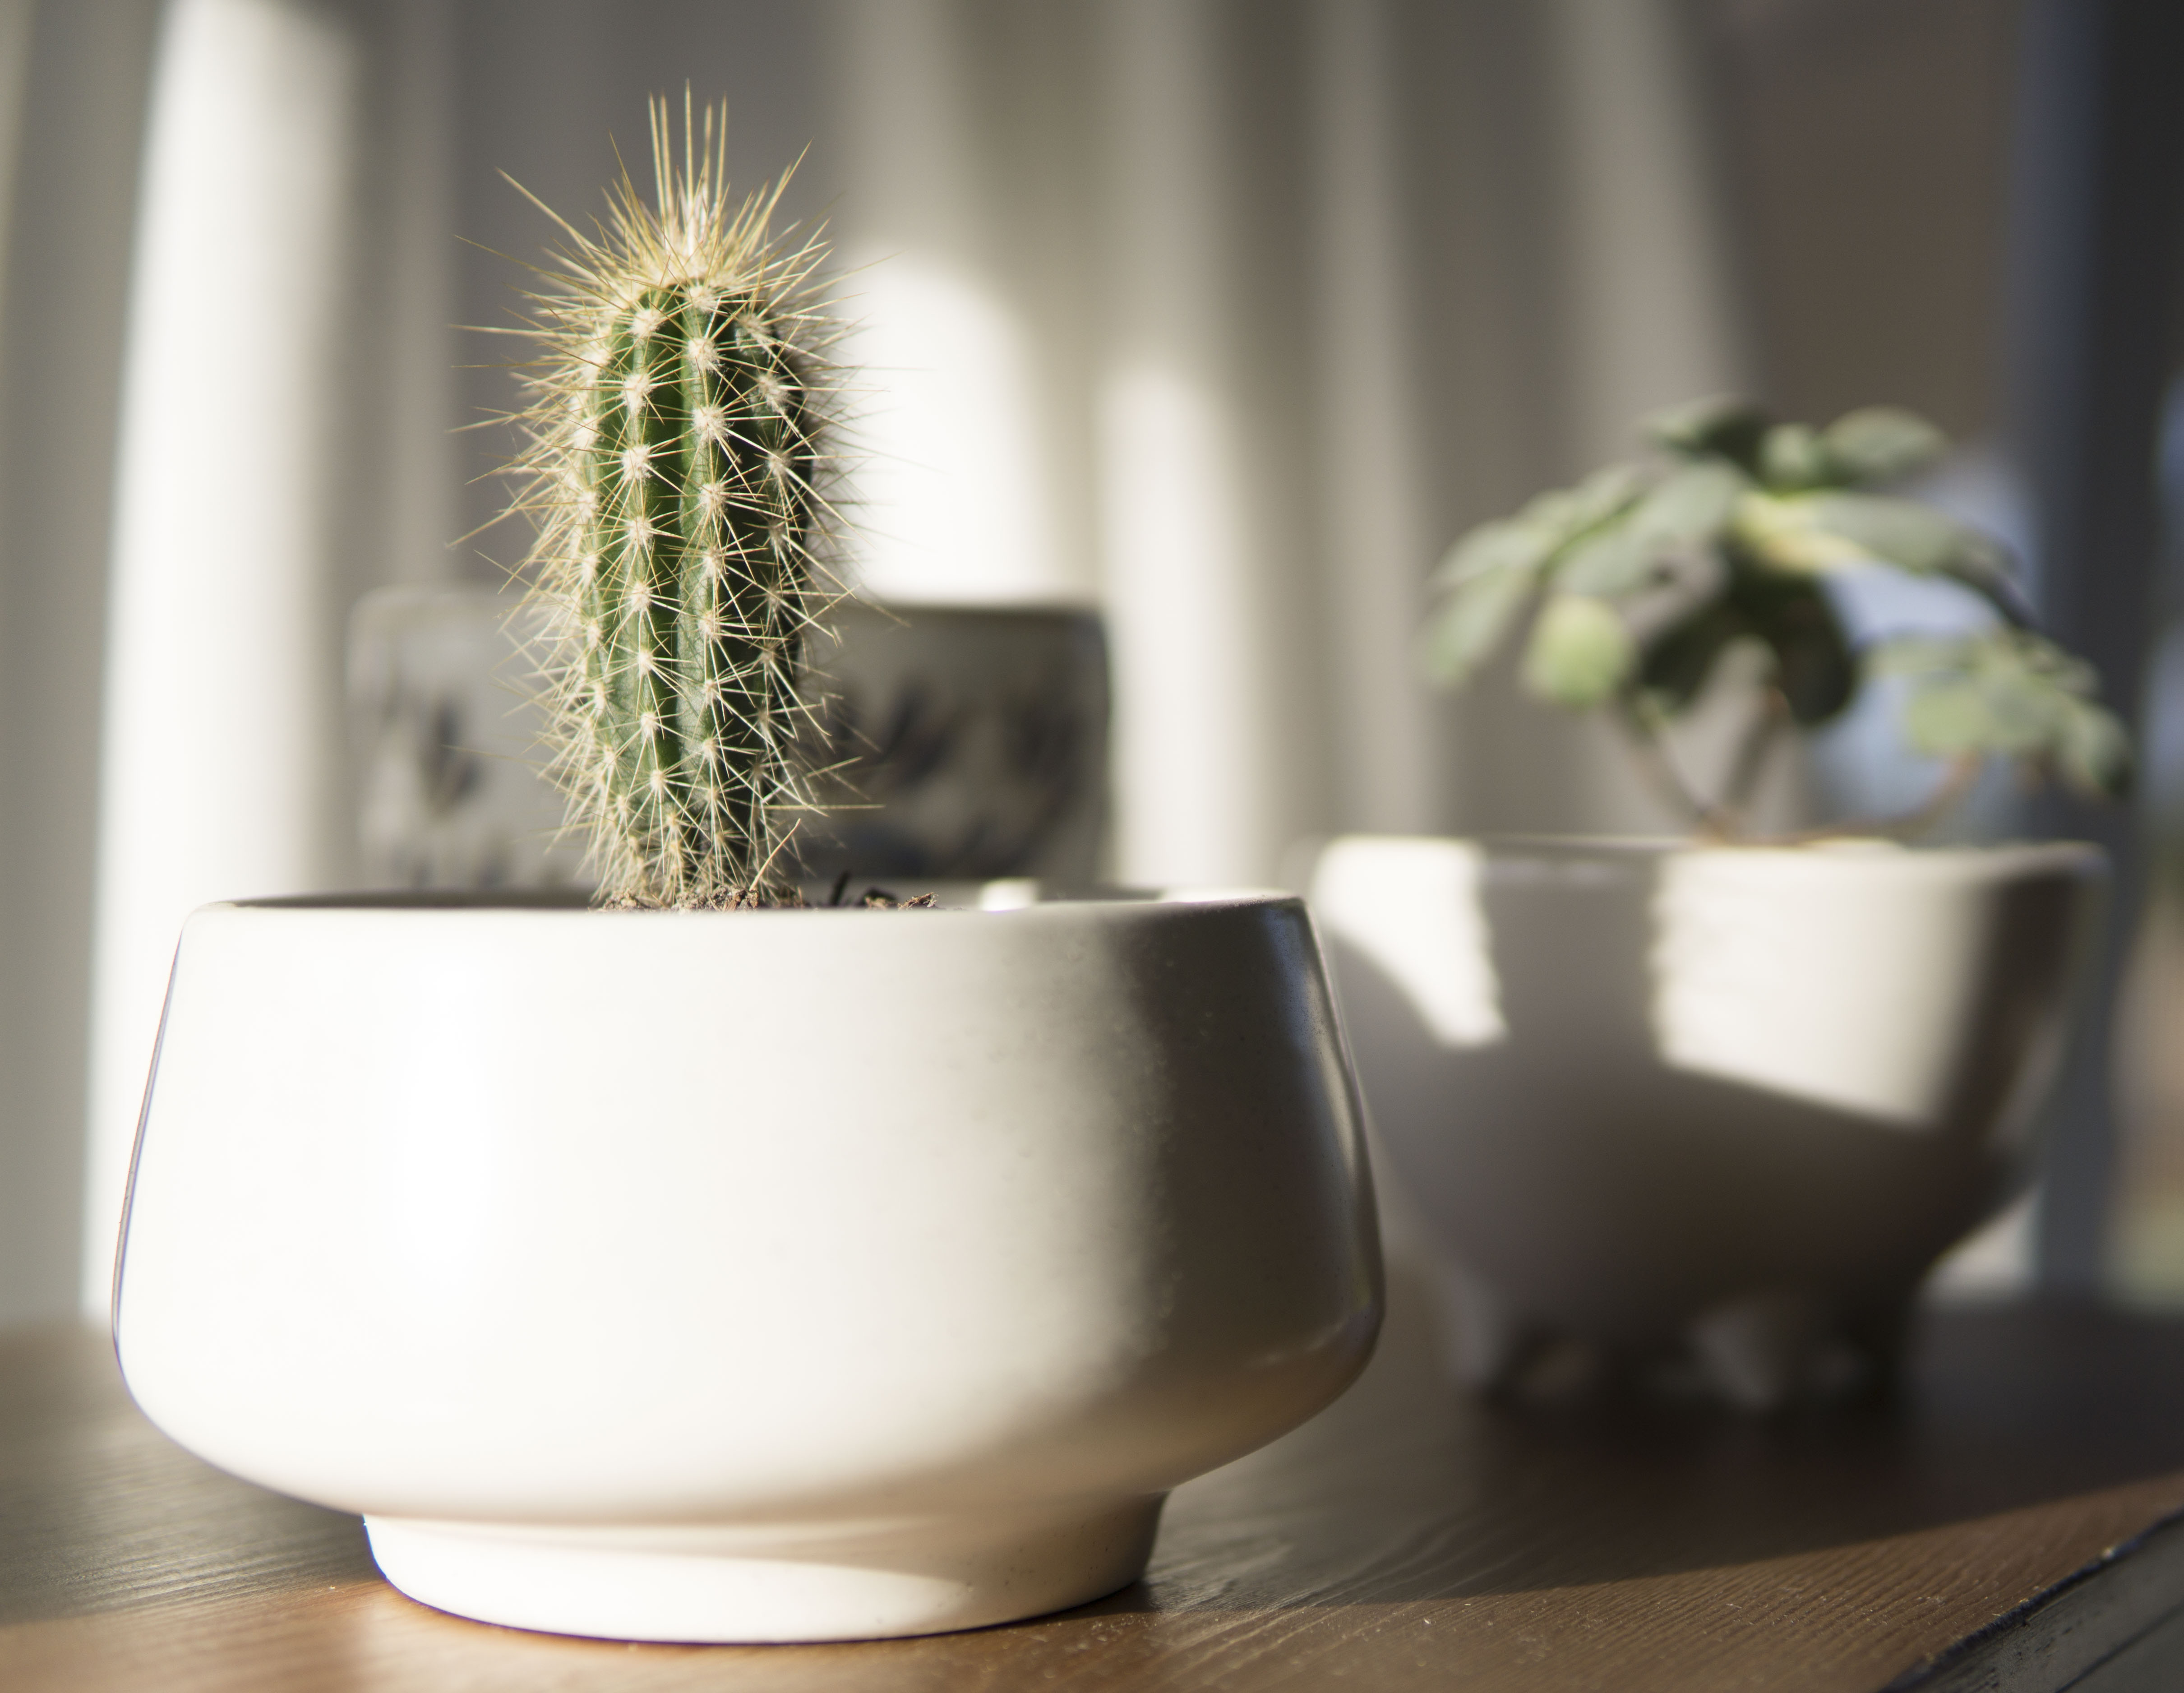 White Potted Cactus Plant in Closeup Photo